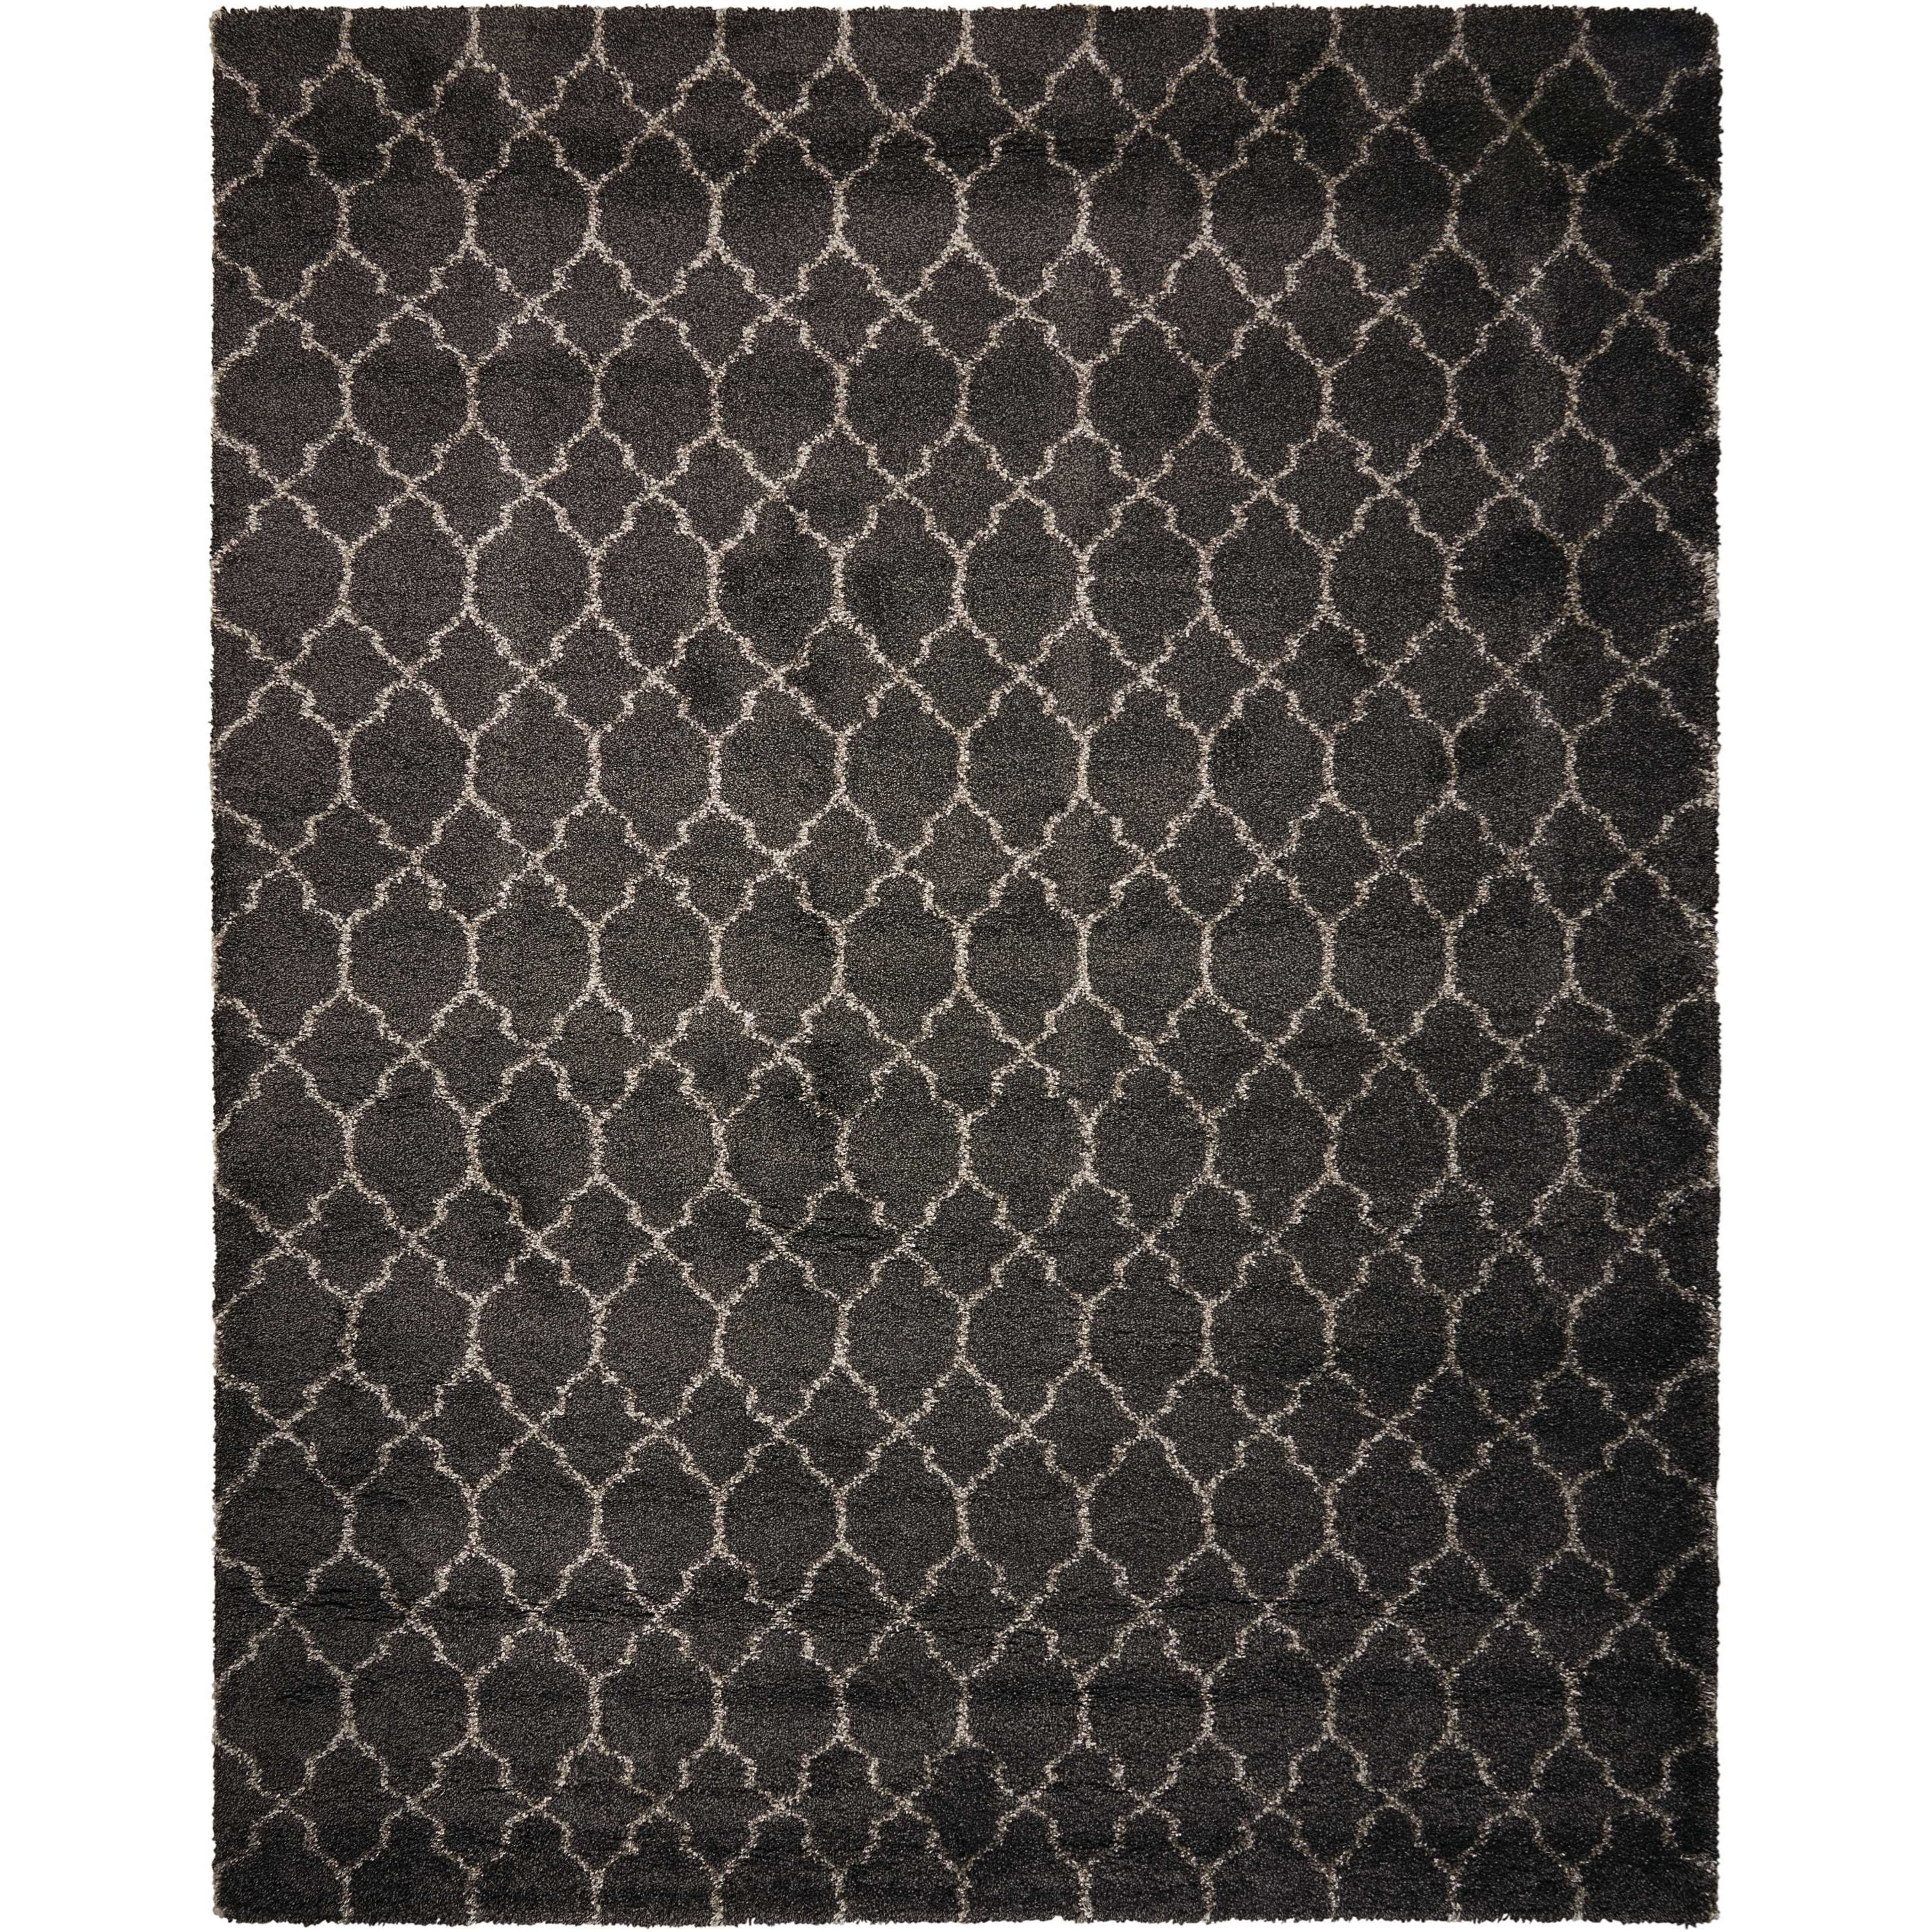 10' x 13' Charcoal Rectangle Rug